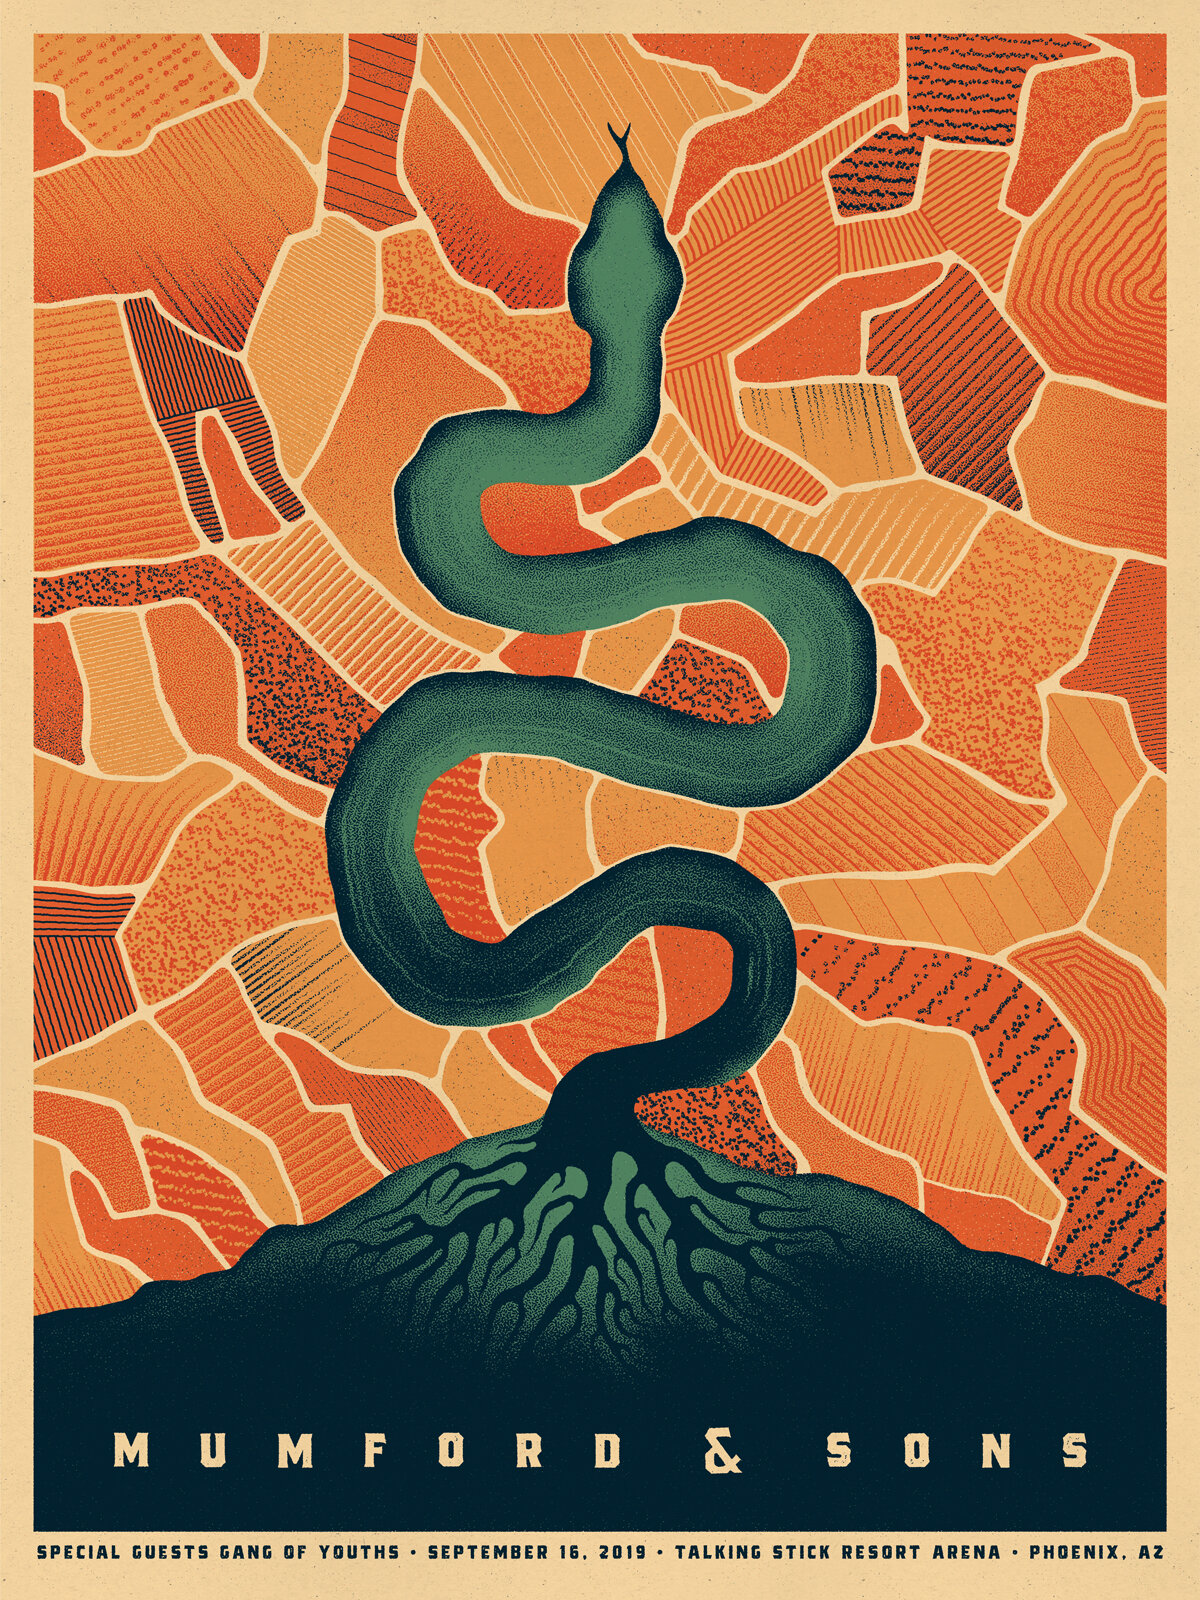 Mumford and Sons Poster by DKNG